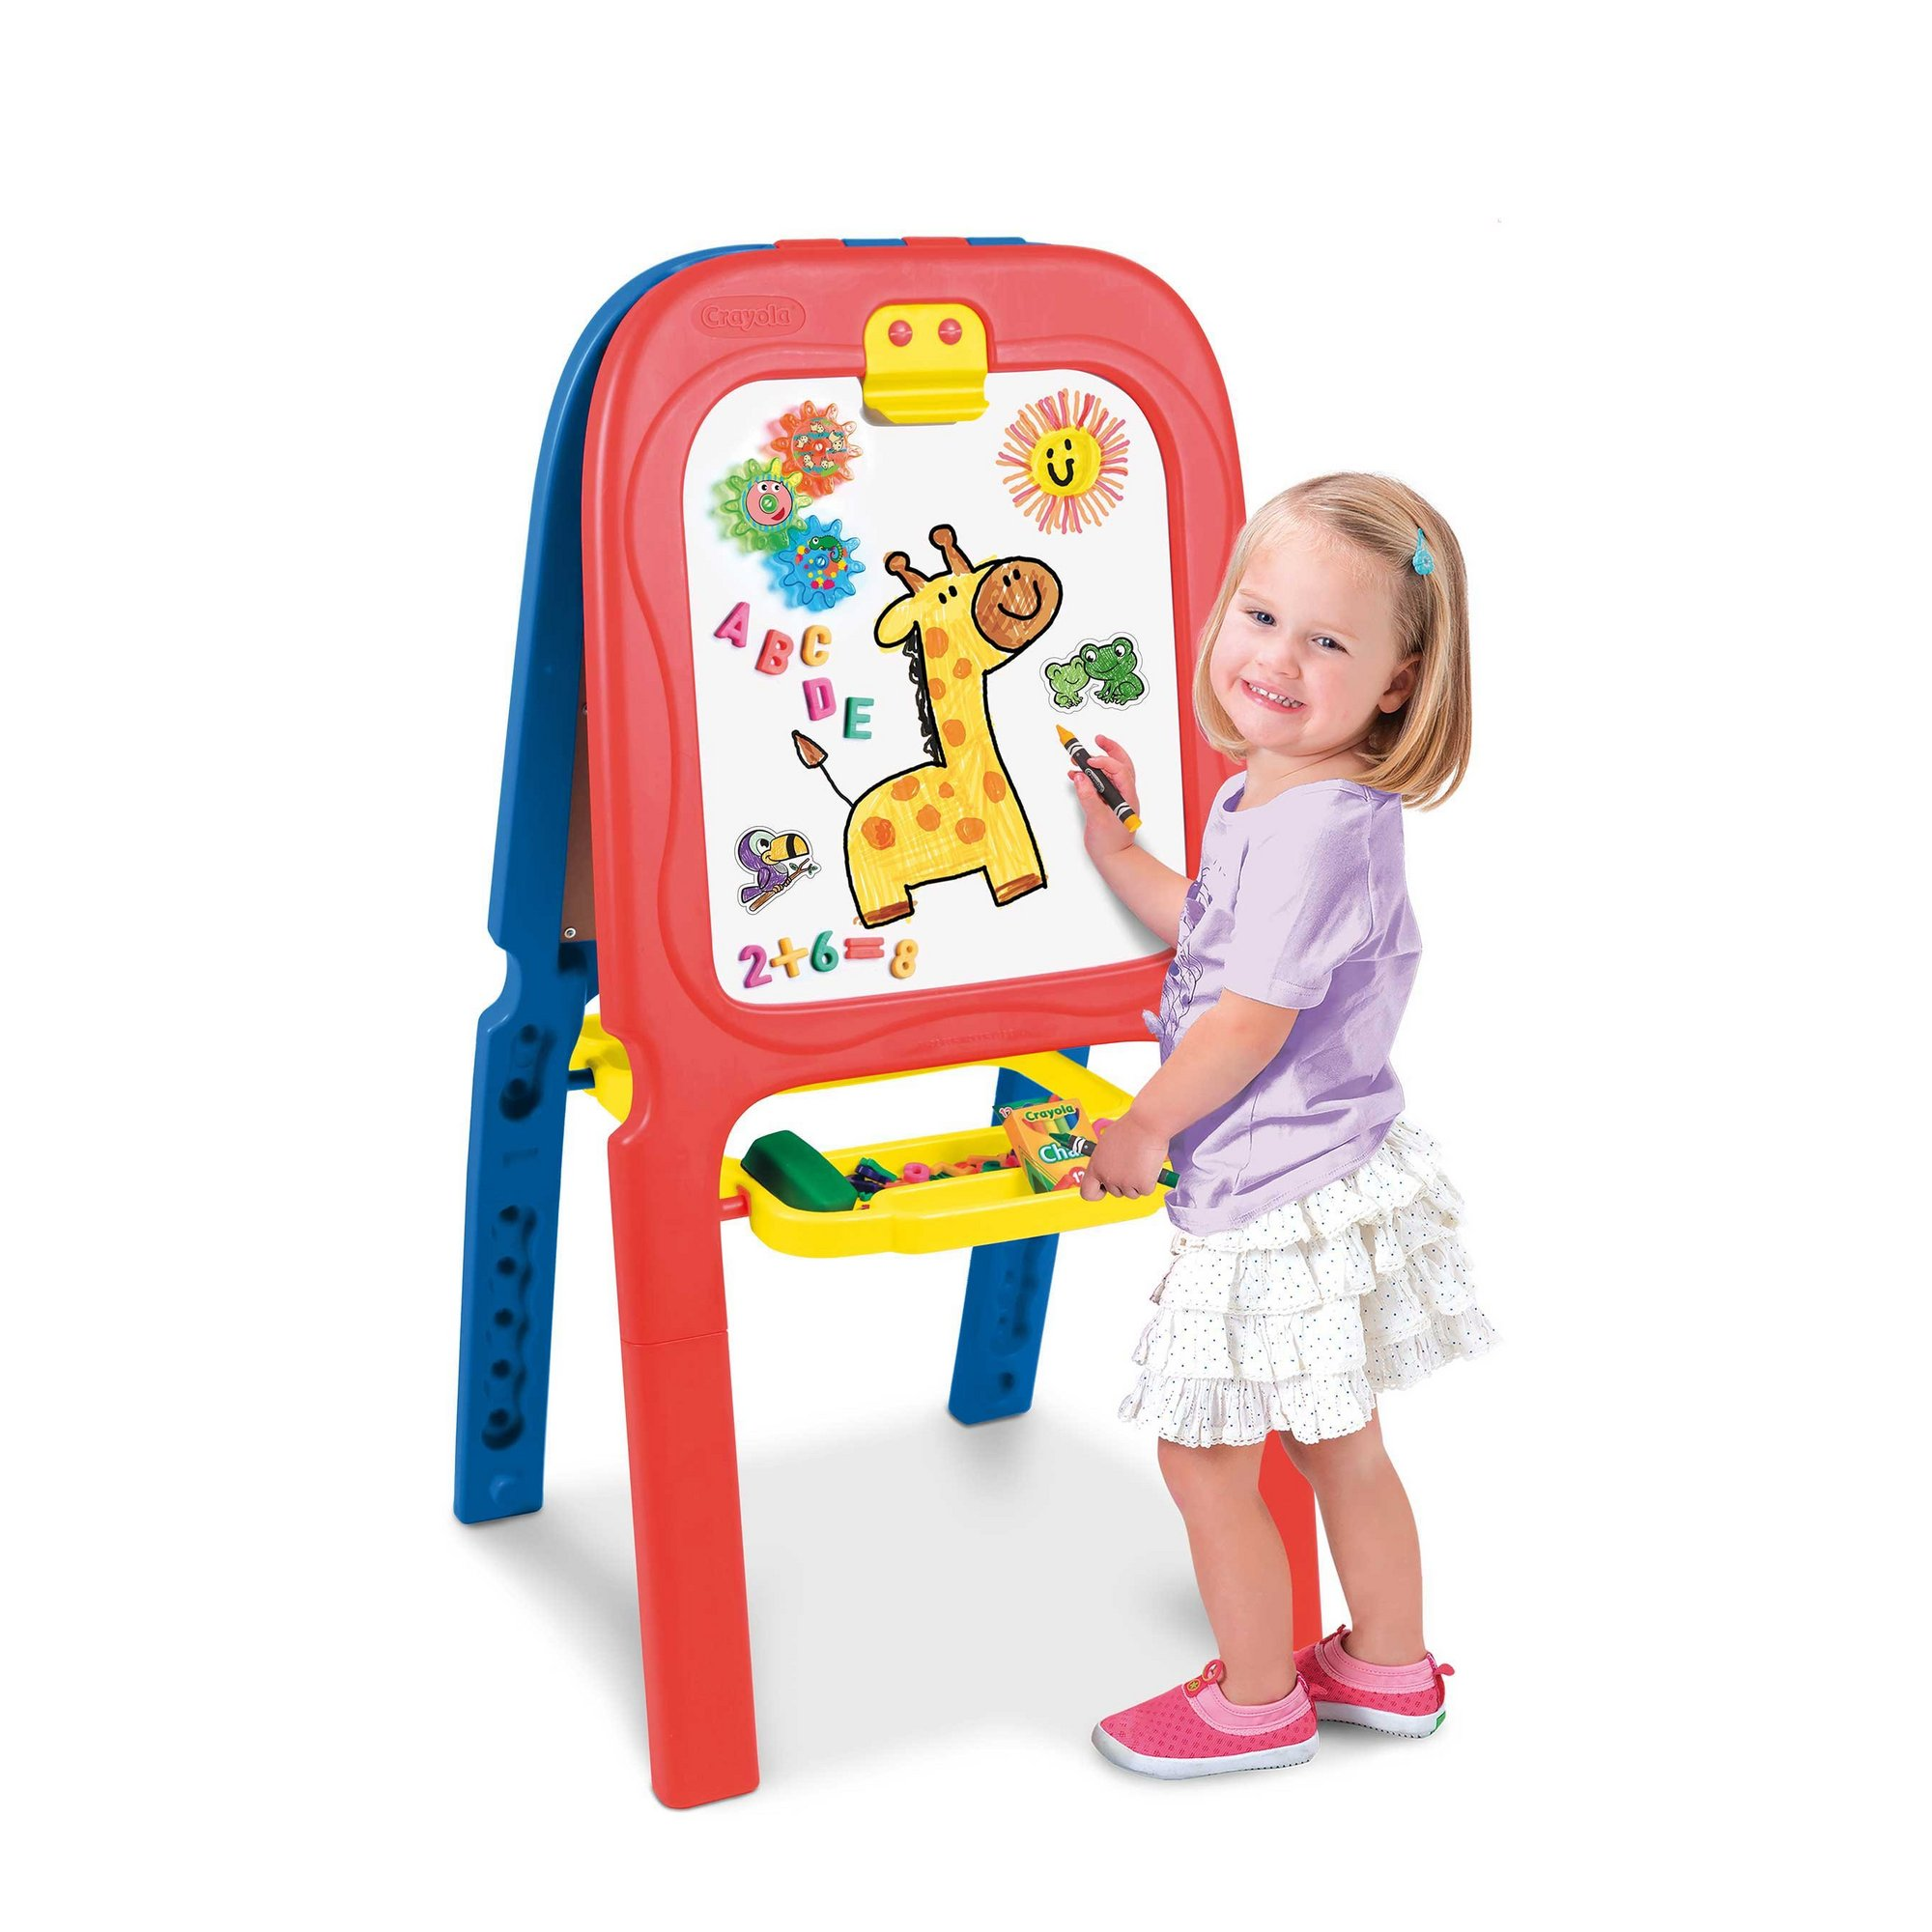 Image of Crayola 3-In-1 Double Easel